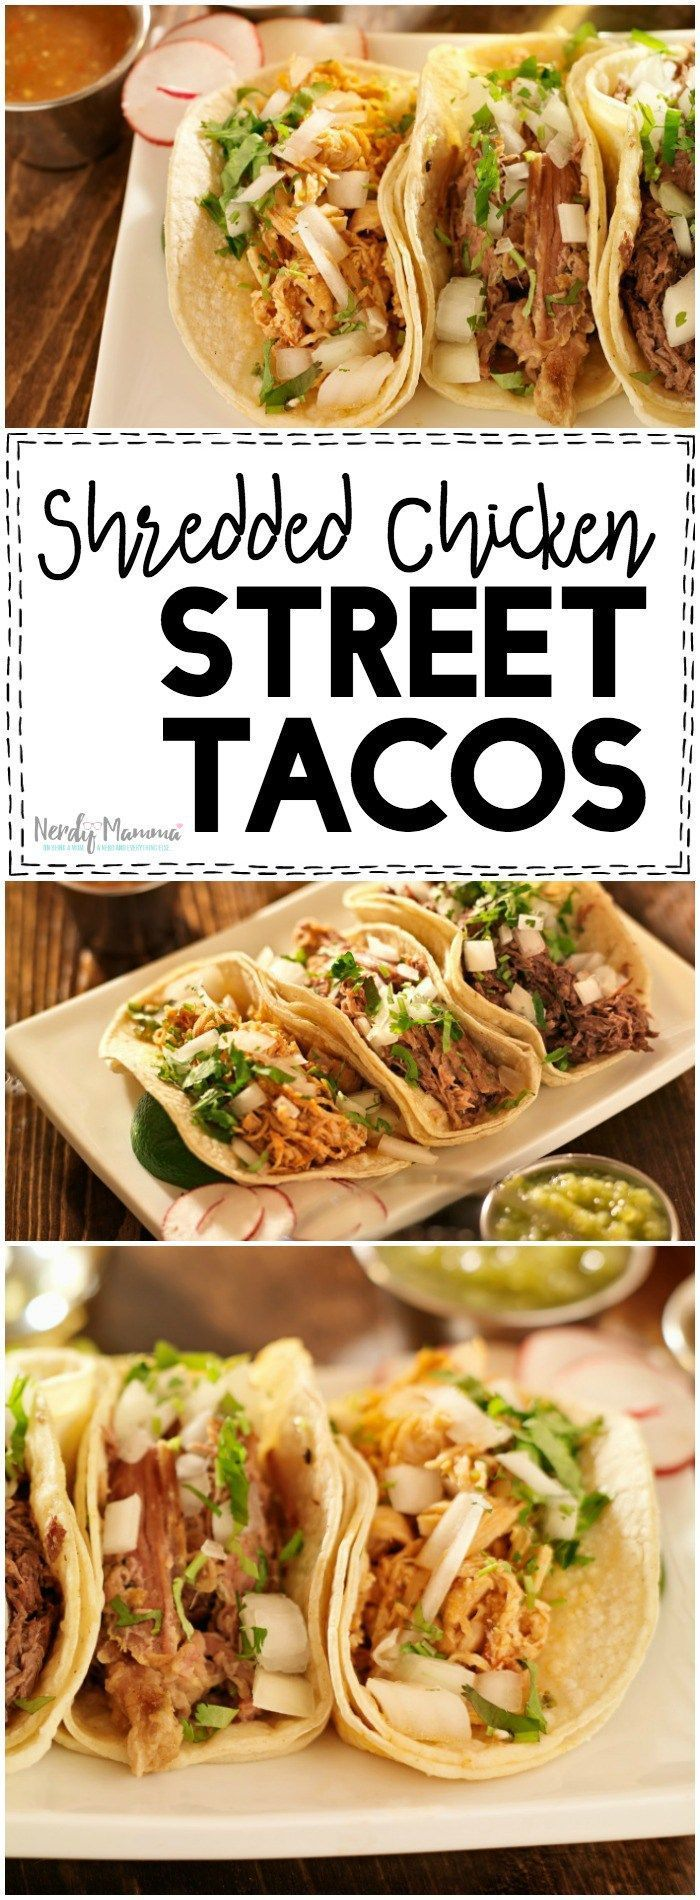 Ooooh, this recipe for Shredded Chicken Street Tacos is so yummy sounding. I… | https://lomejordelaweb.es/